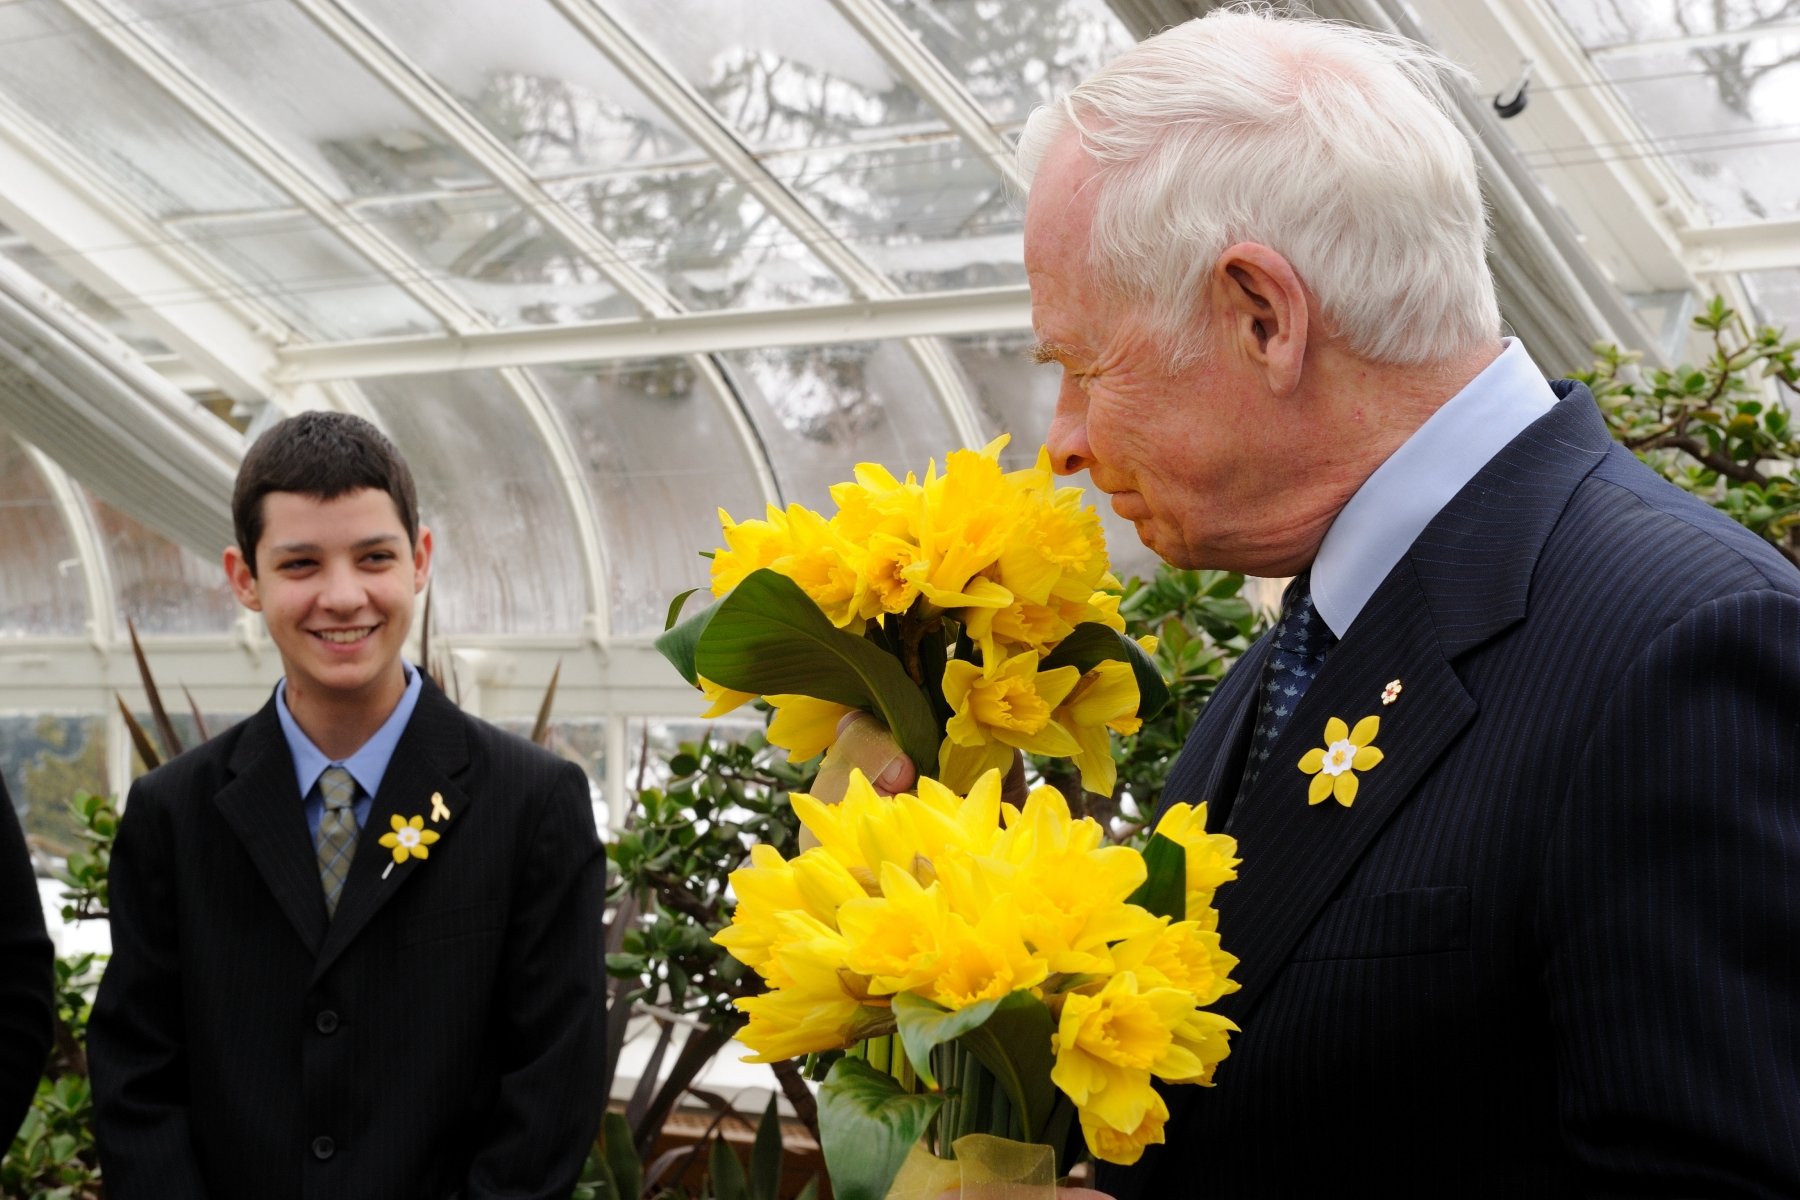 His Excellency took a few moments to appreciate the fragrant bouquet of daffodils.